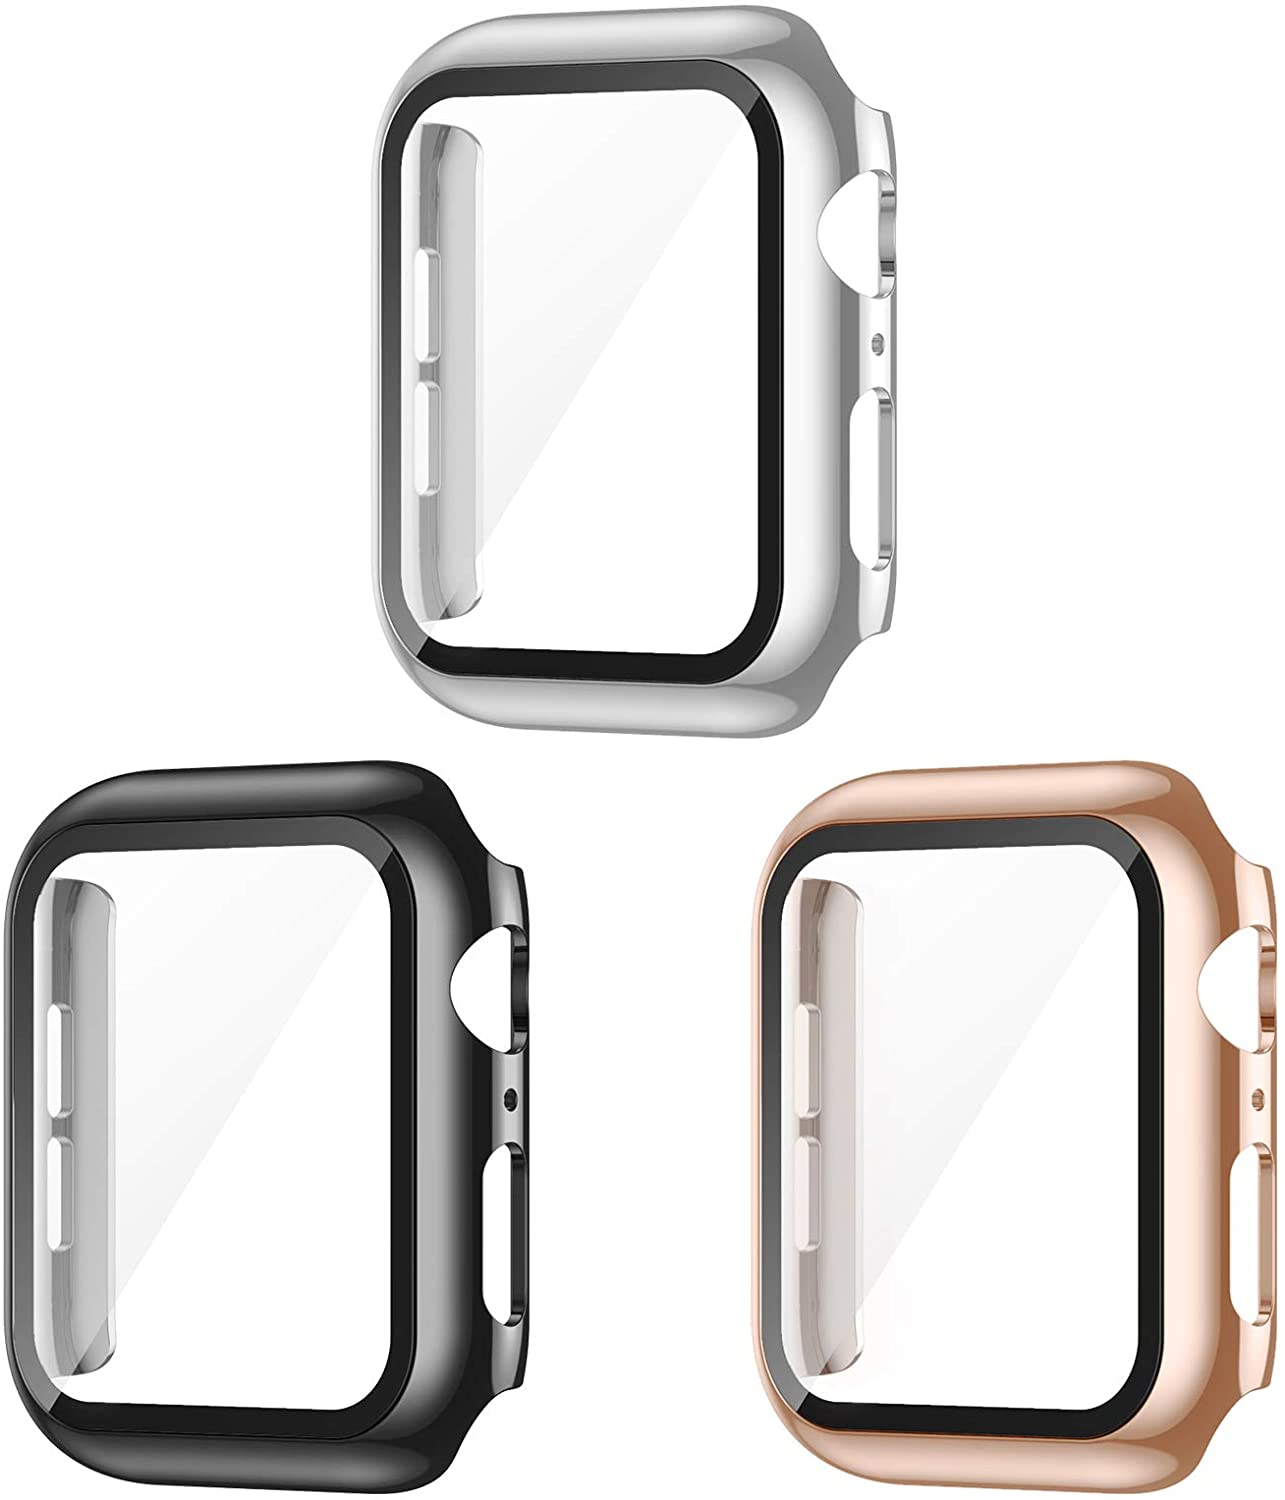 AVIDDA 3 Pack Case with Tempered Glass Screen Protector for Apple Watch 42mm Series 3/2/1, Slim Guard Bumper Full Coverage HD Ultra-Thin Cover Compatible with iWatch 42mm